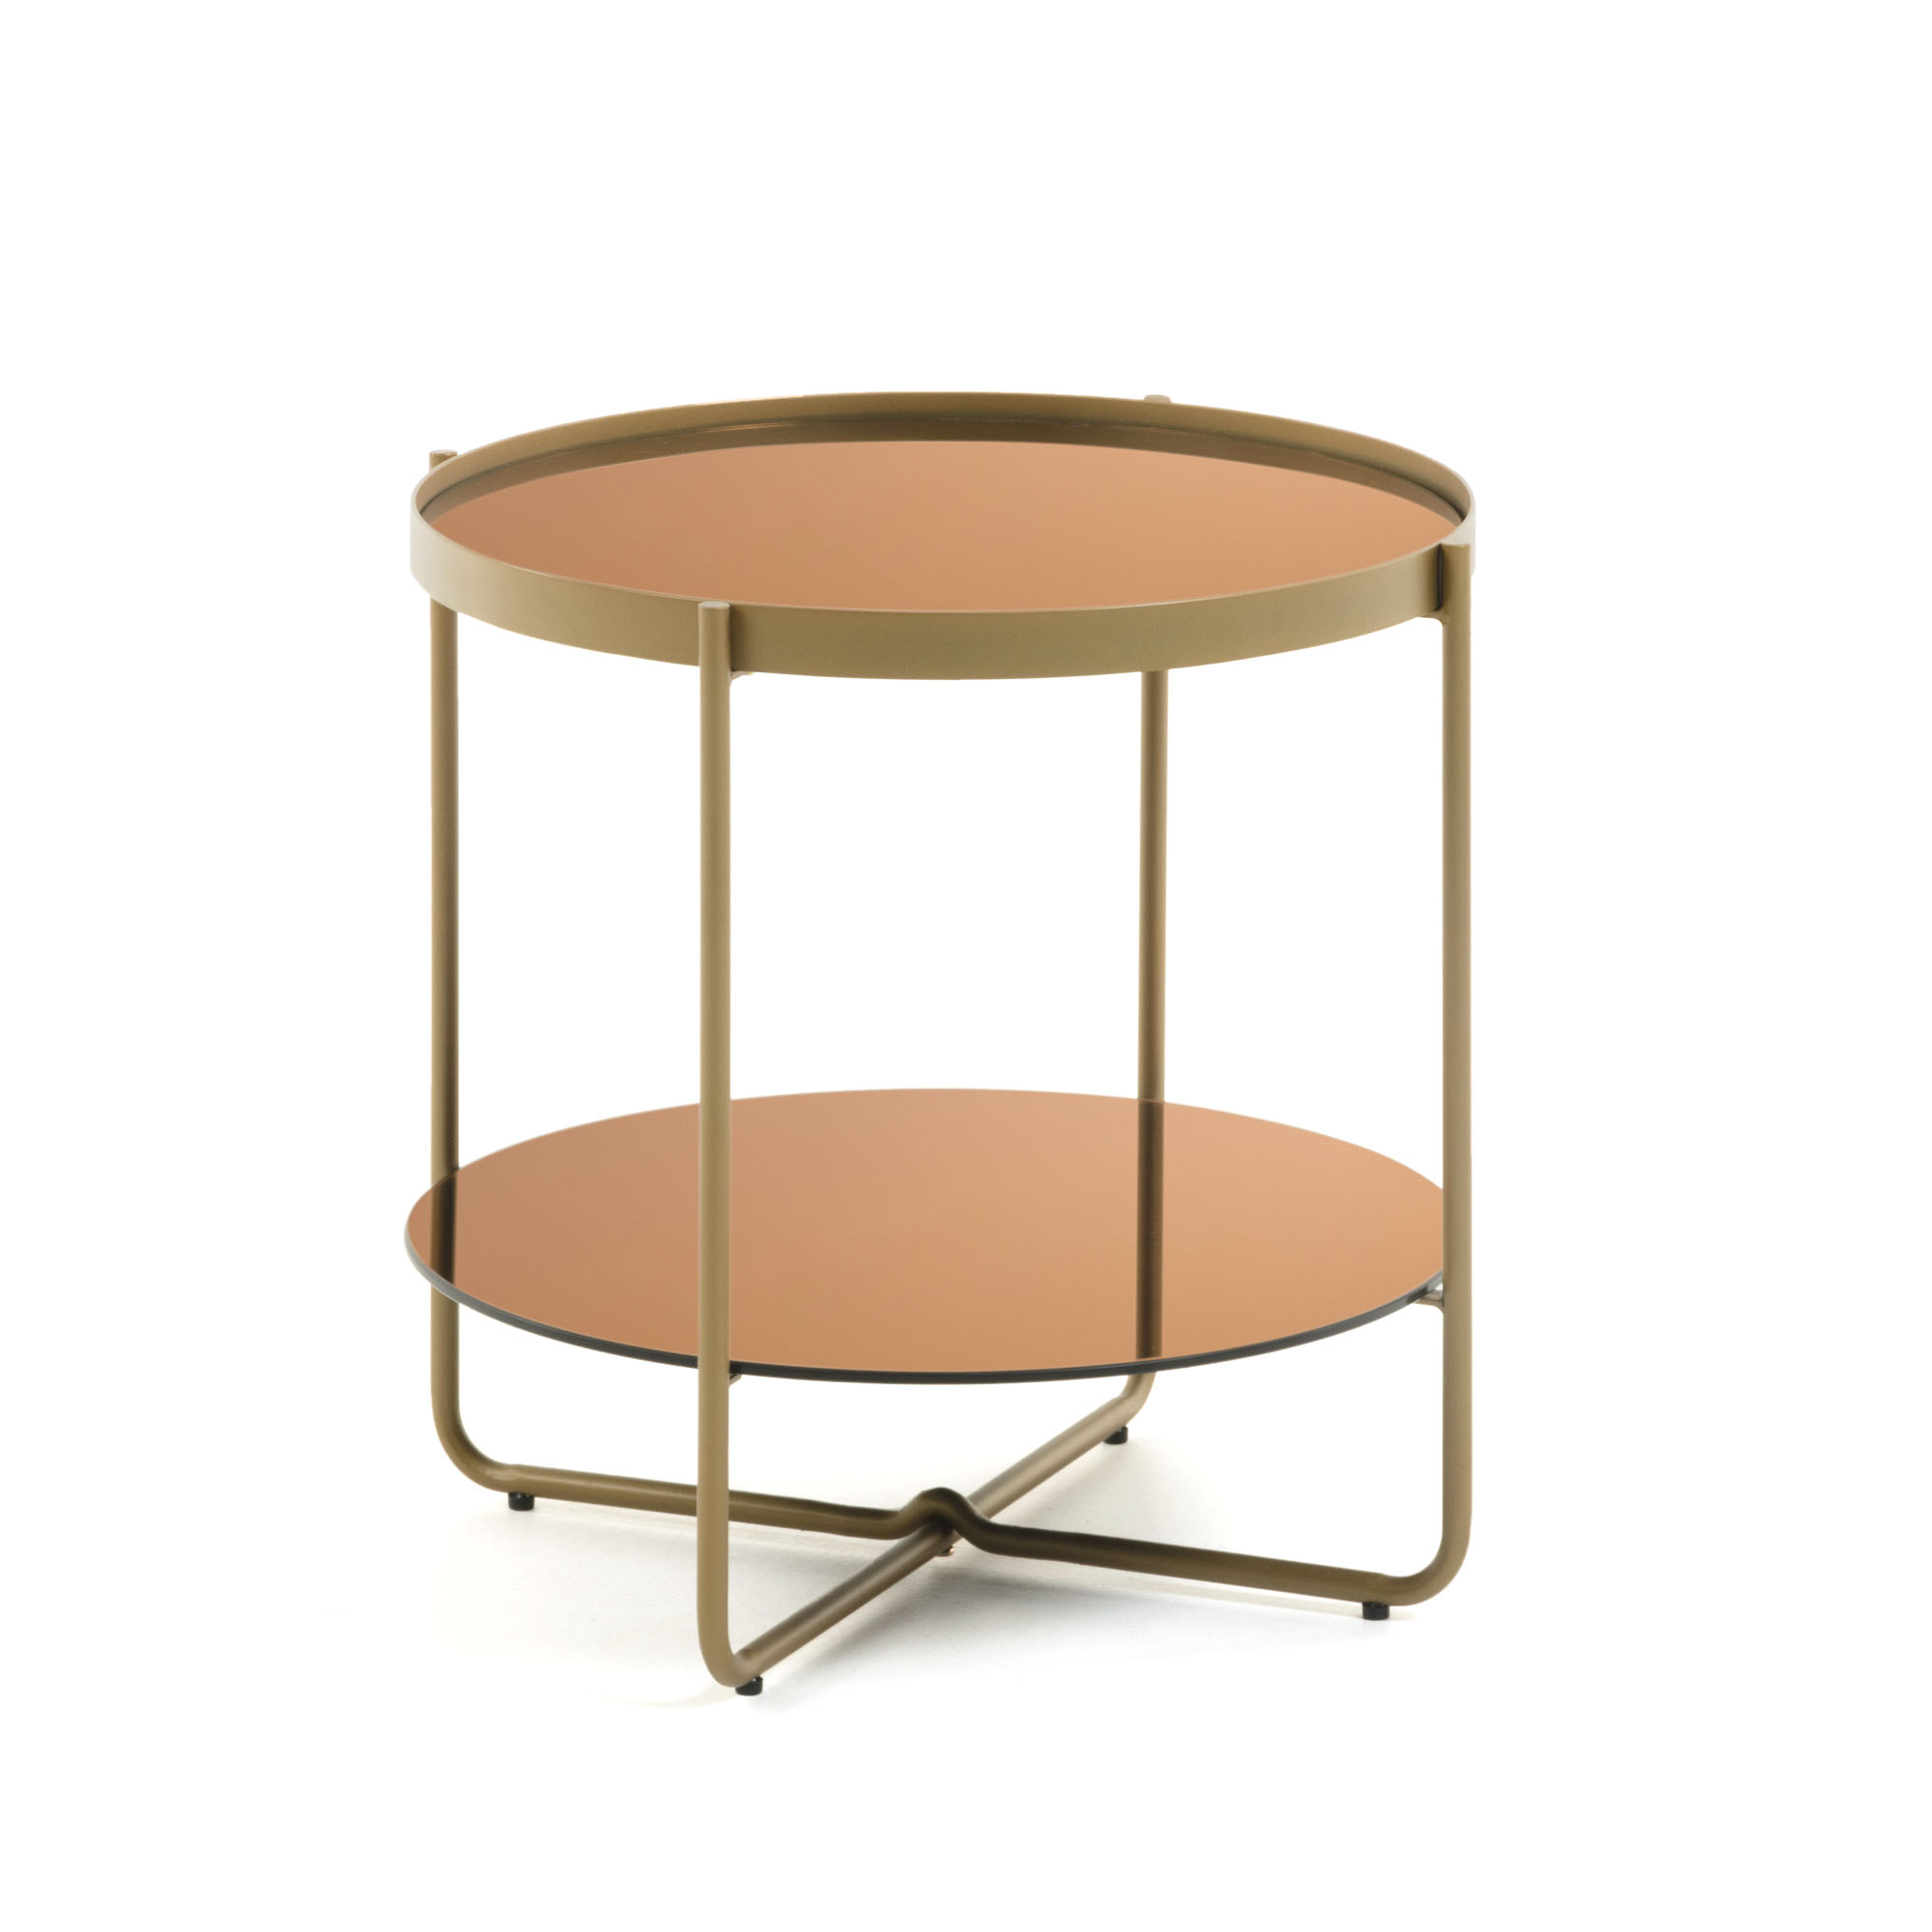 Kave home - table d'appoint aroa Ø 53 cm